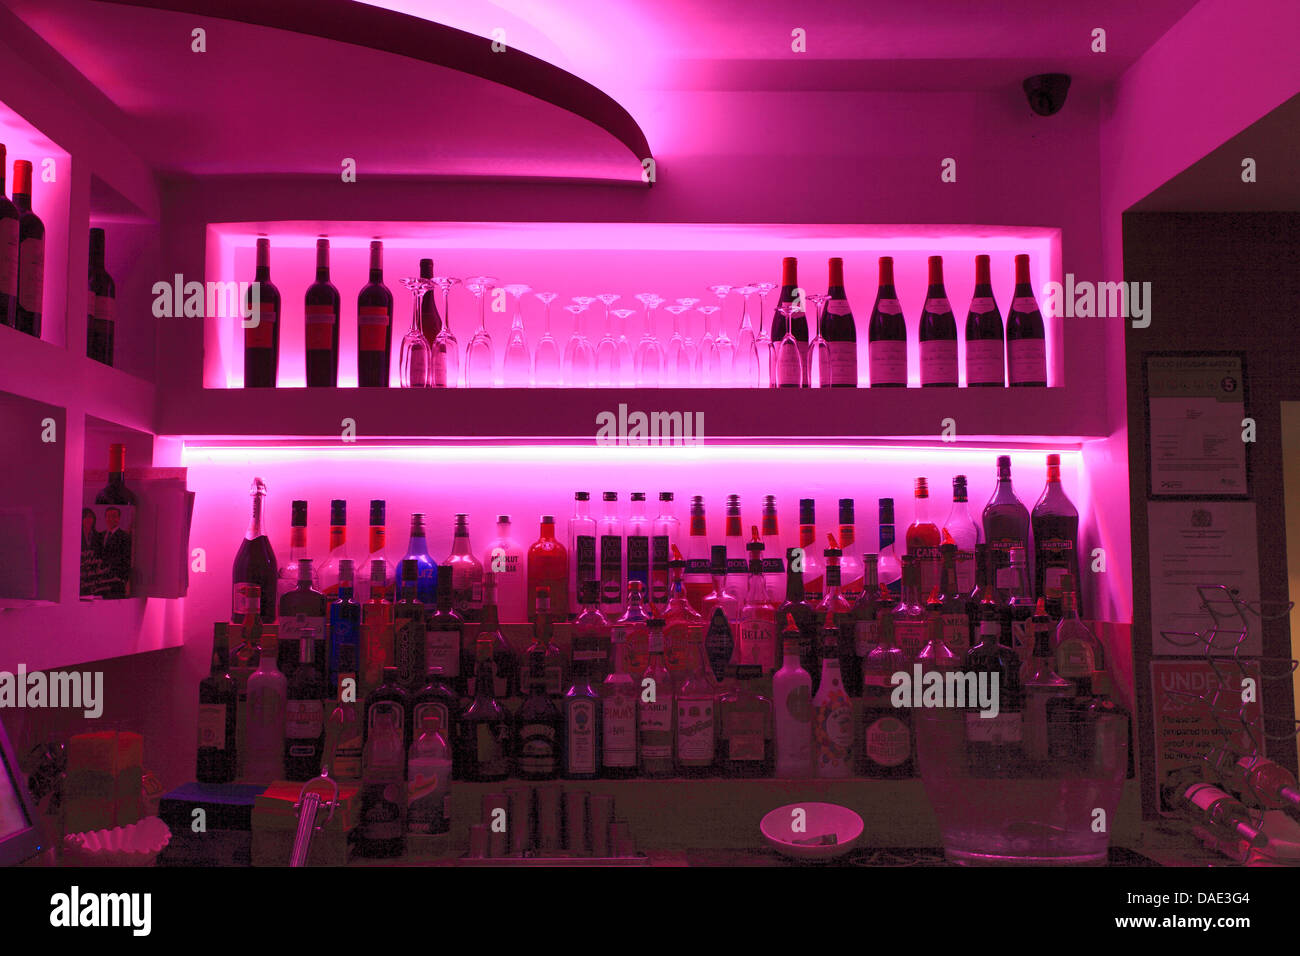 modern cafe bar with pink subtle lighting, public house interior